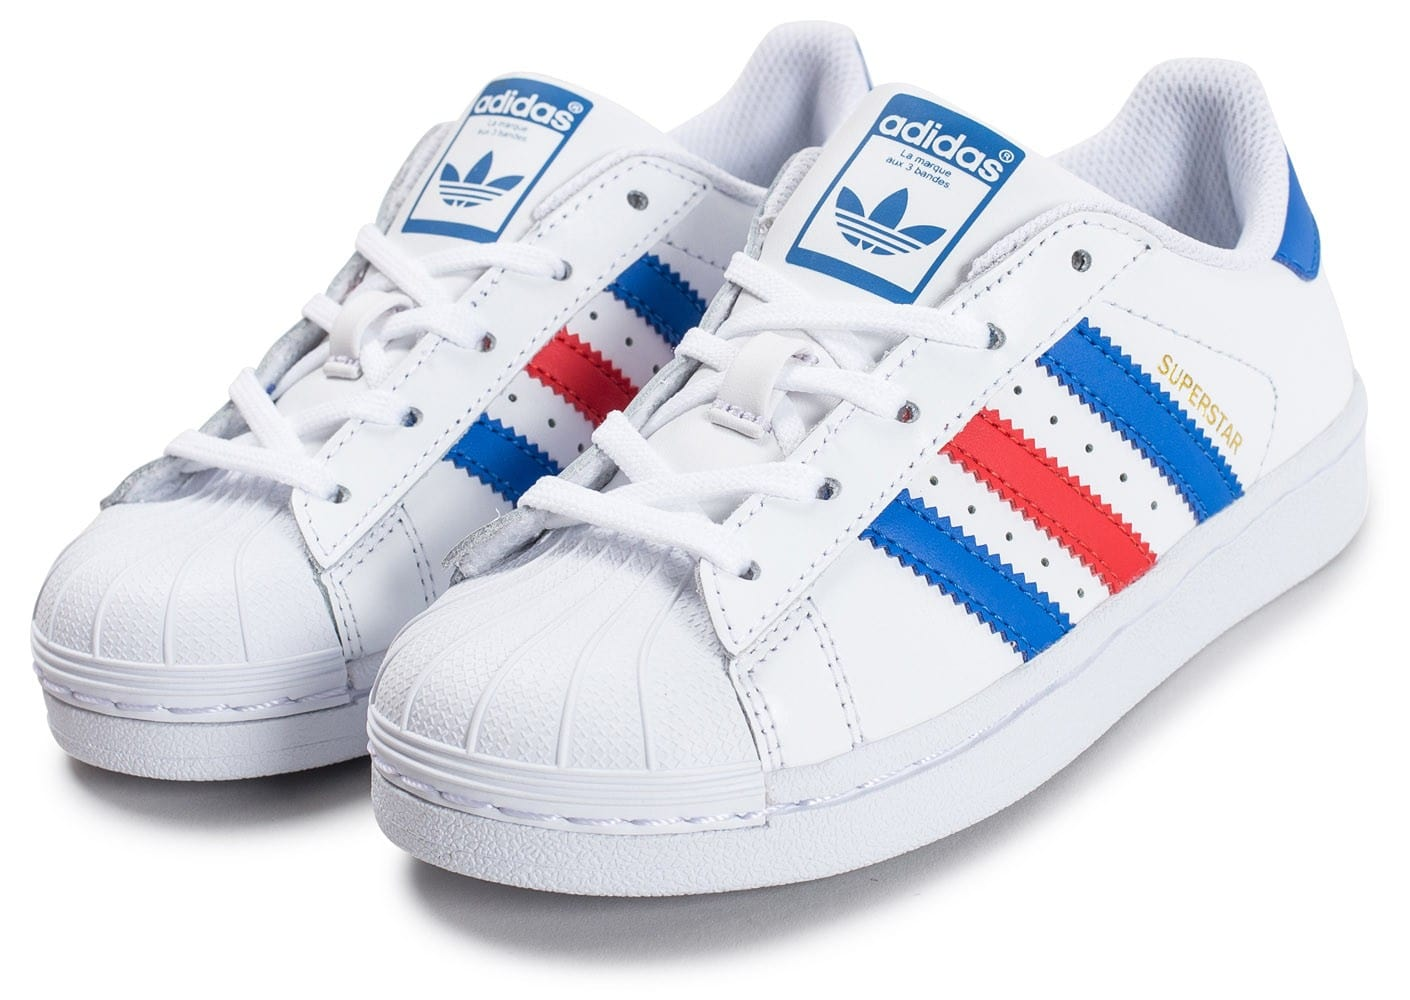 adidas superstar enfant bleu blanc rouge chaussures adidas chausport. Black Bedroom Furniture Sets. Home Design Ideas